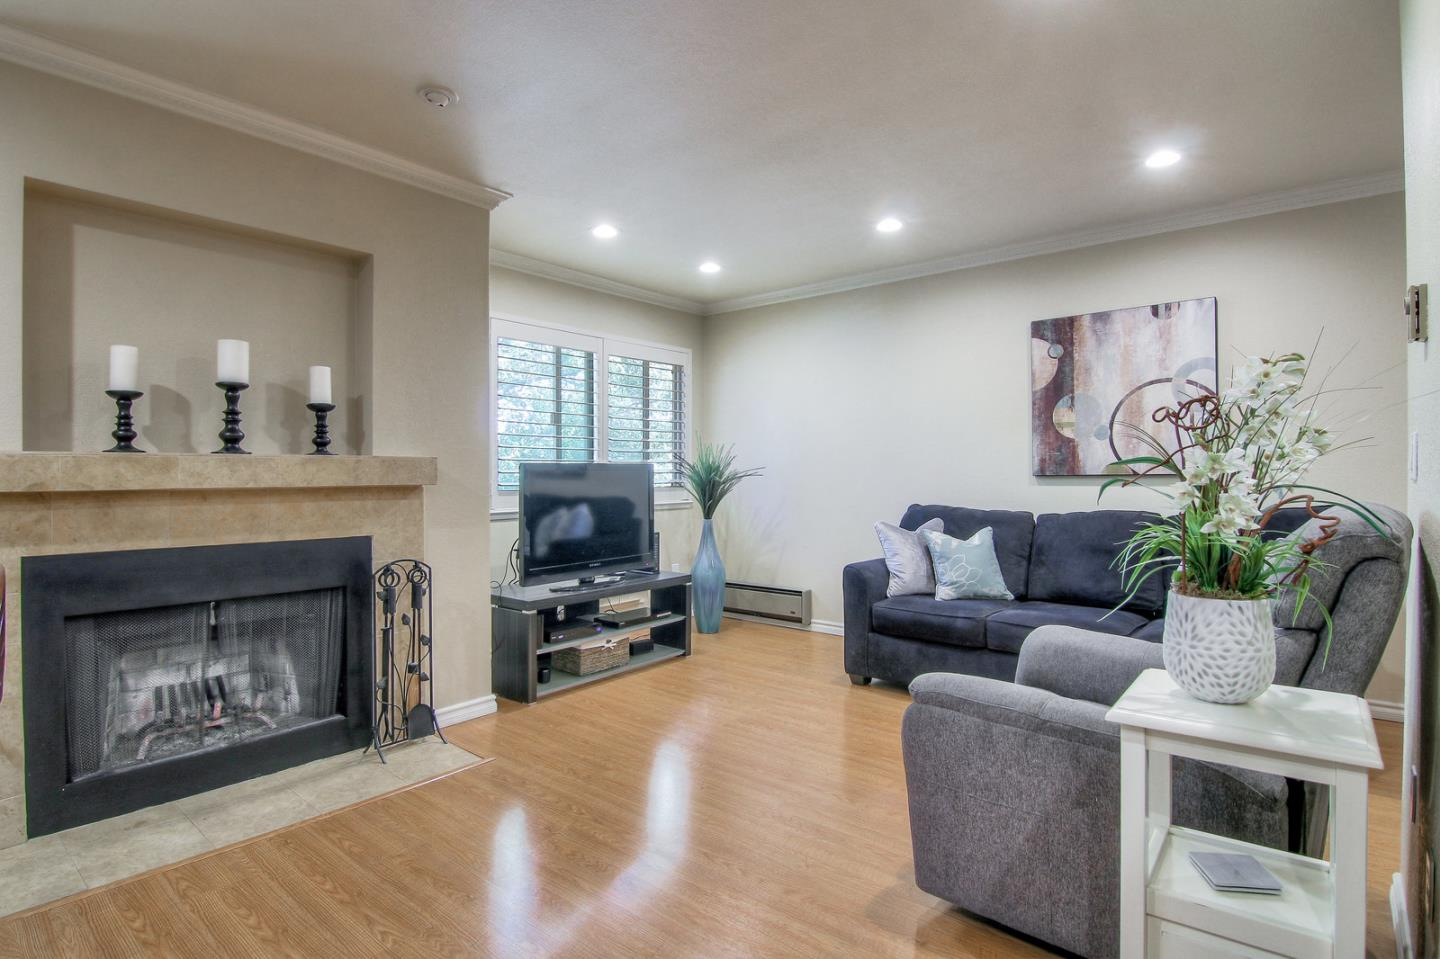 374 UNION AVE F, CAMPBELL, CA 95008